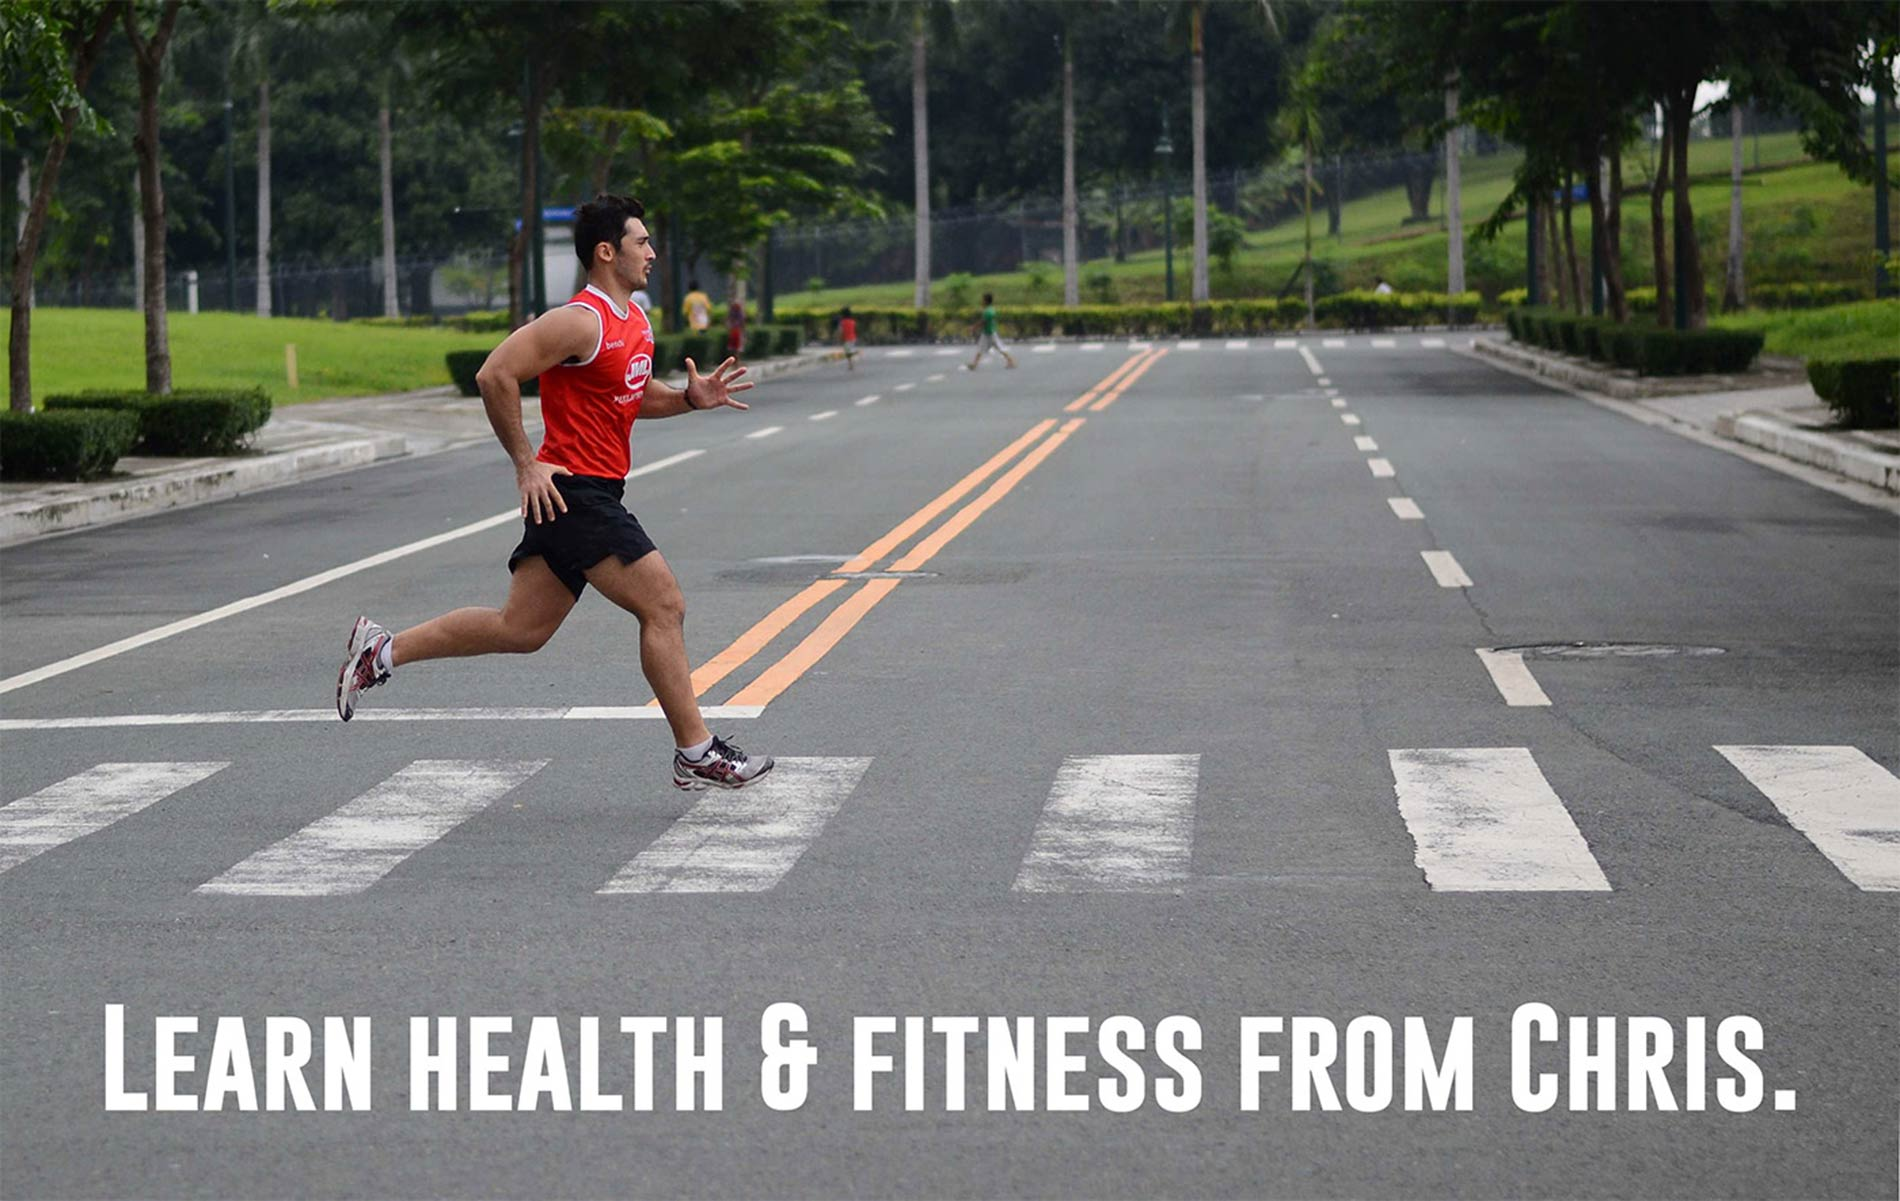 Health and fitness tips